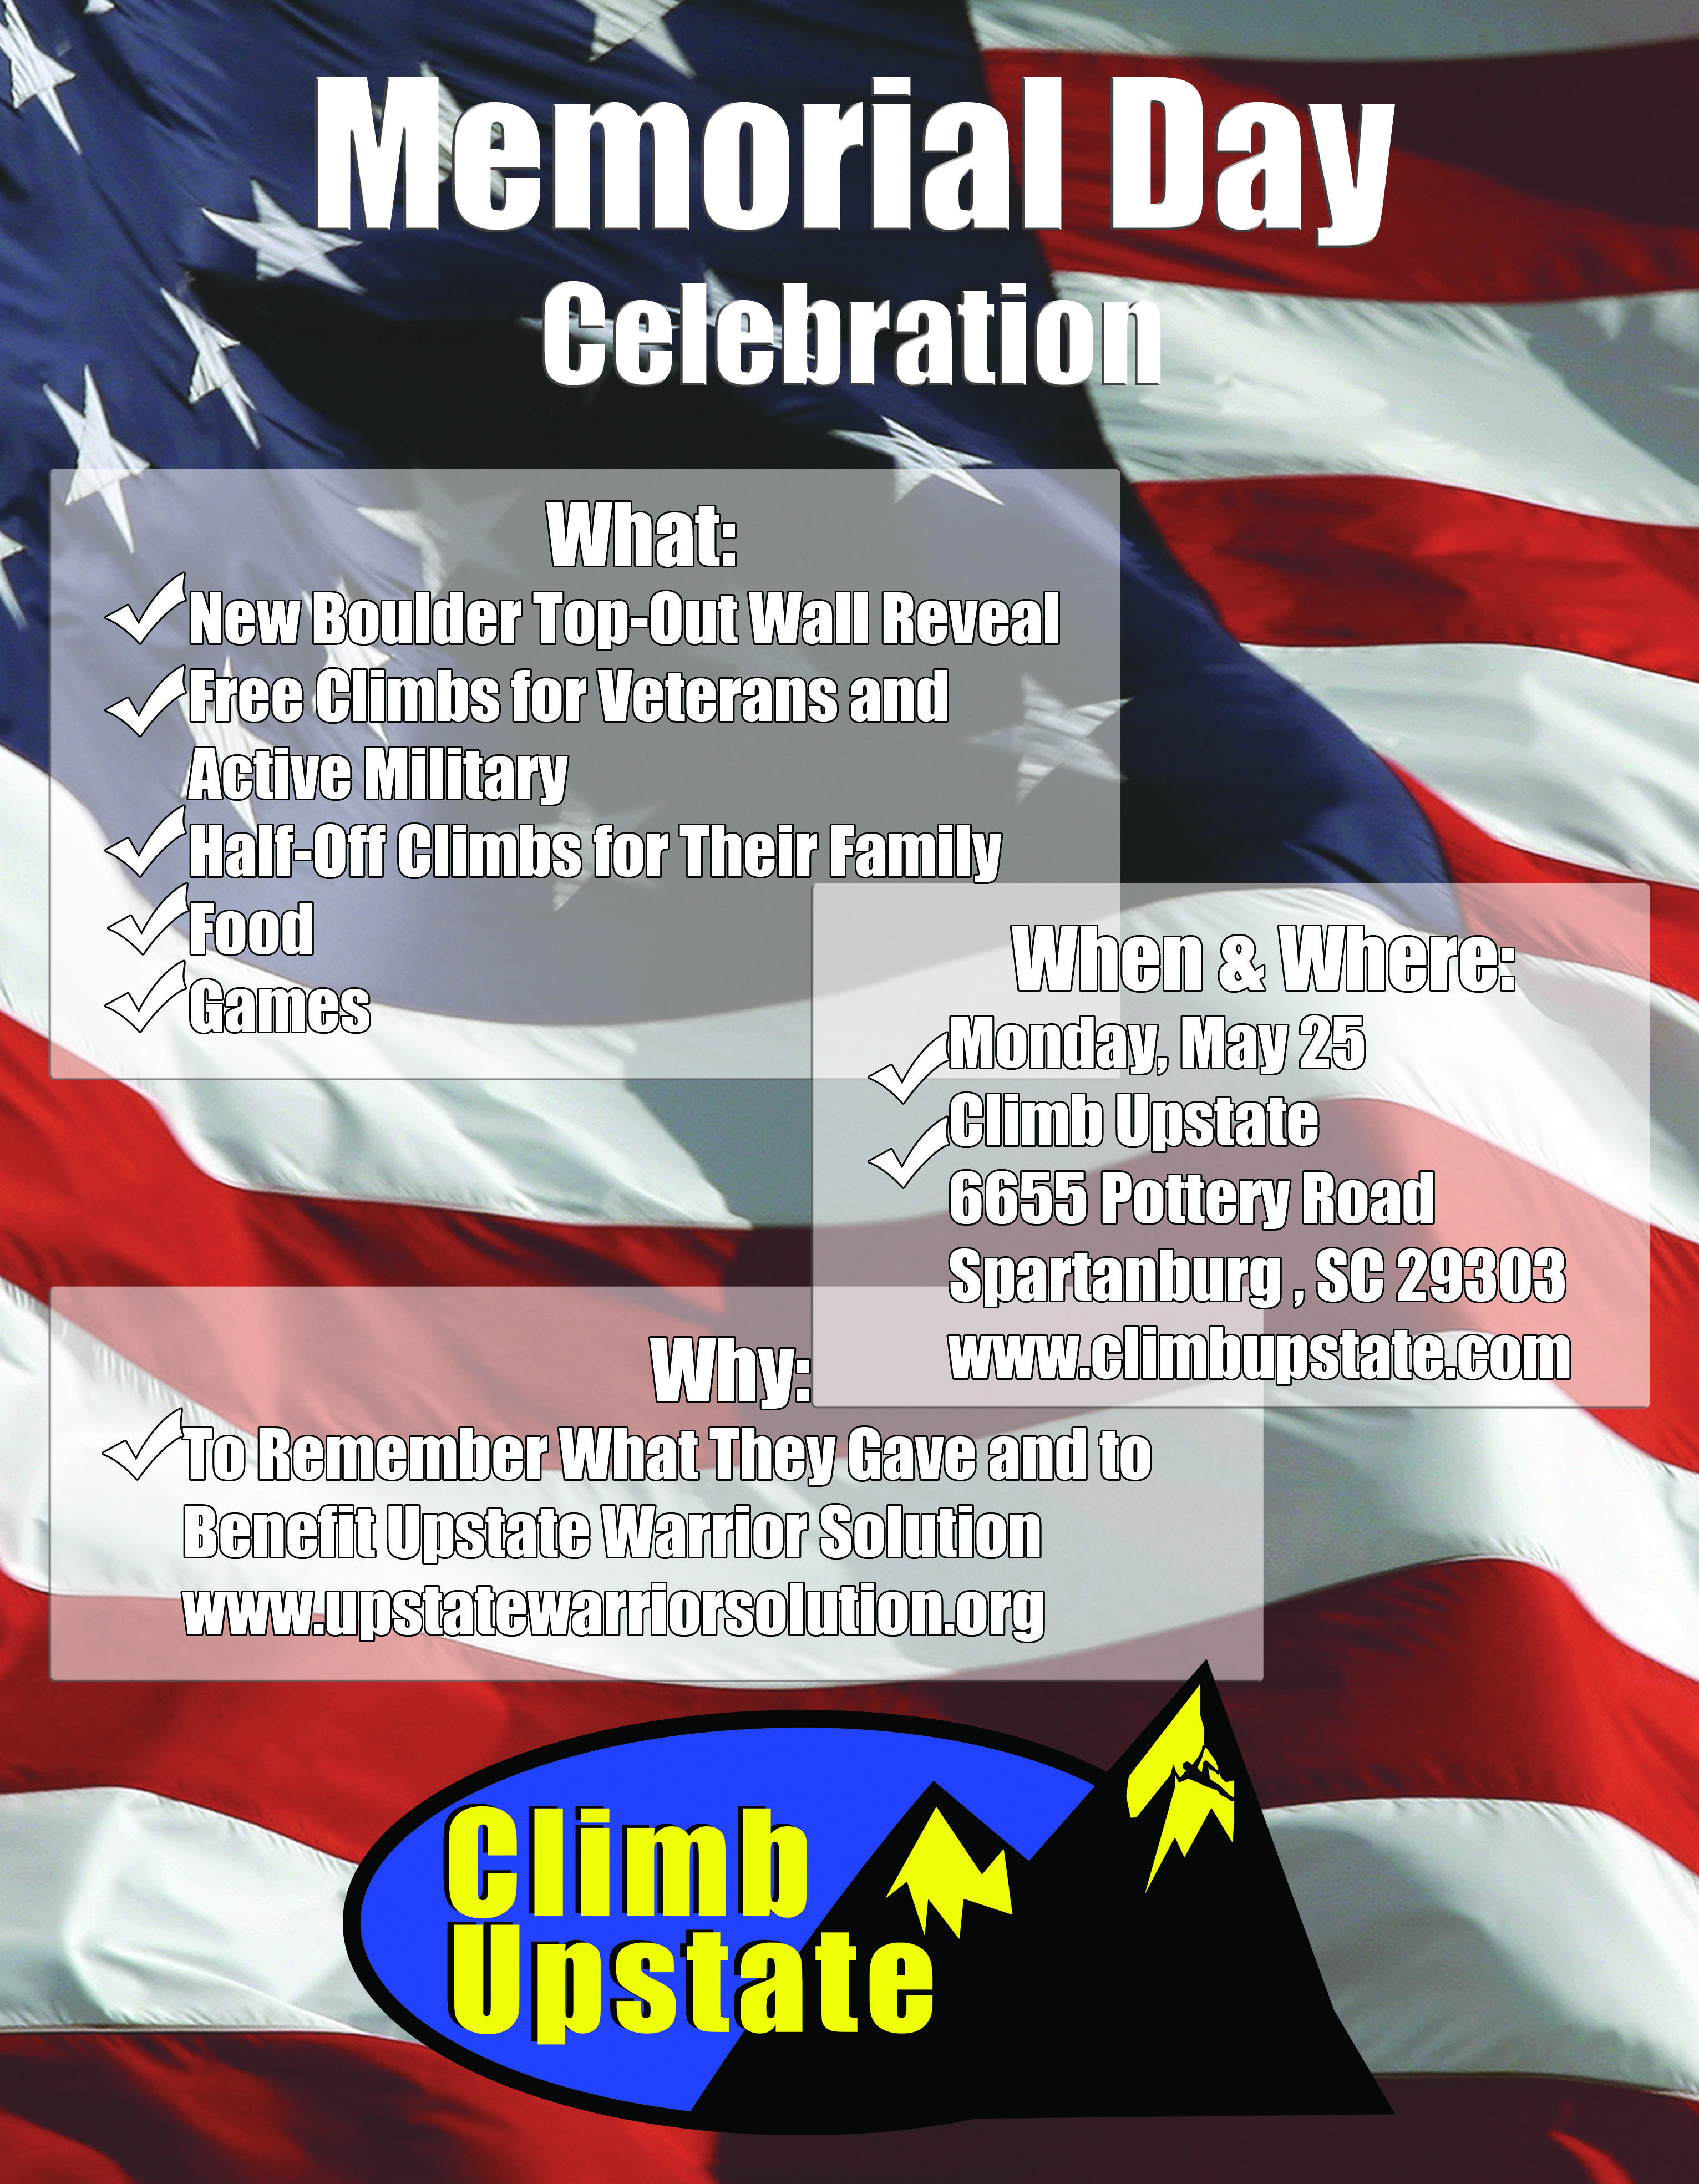 #memorial #day #2015 #celebration #fundraisers #climbing #upstate #sc